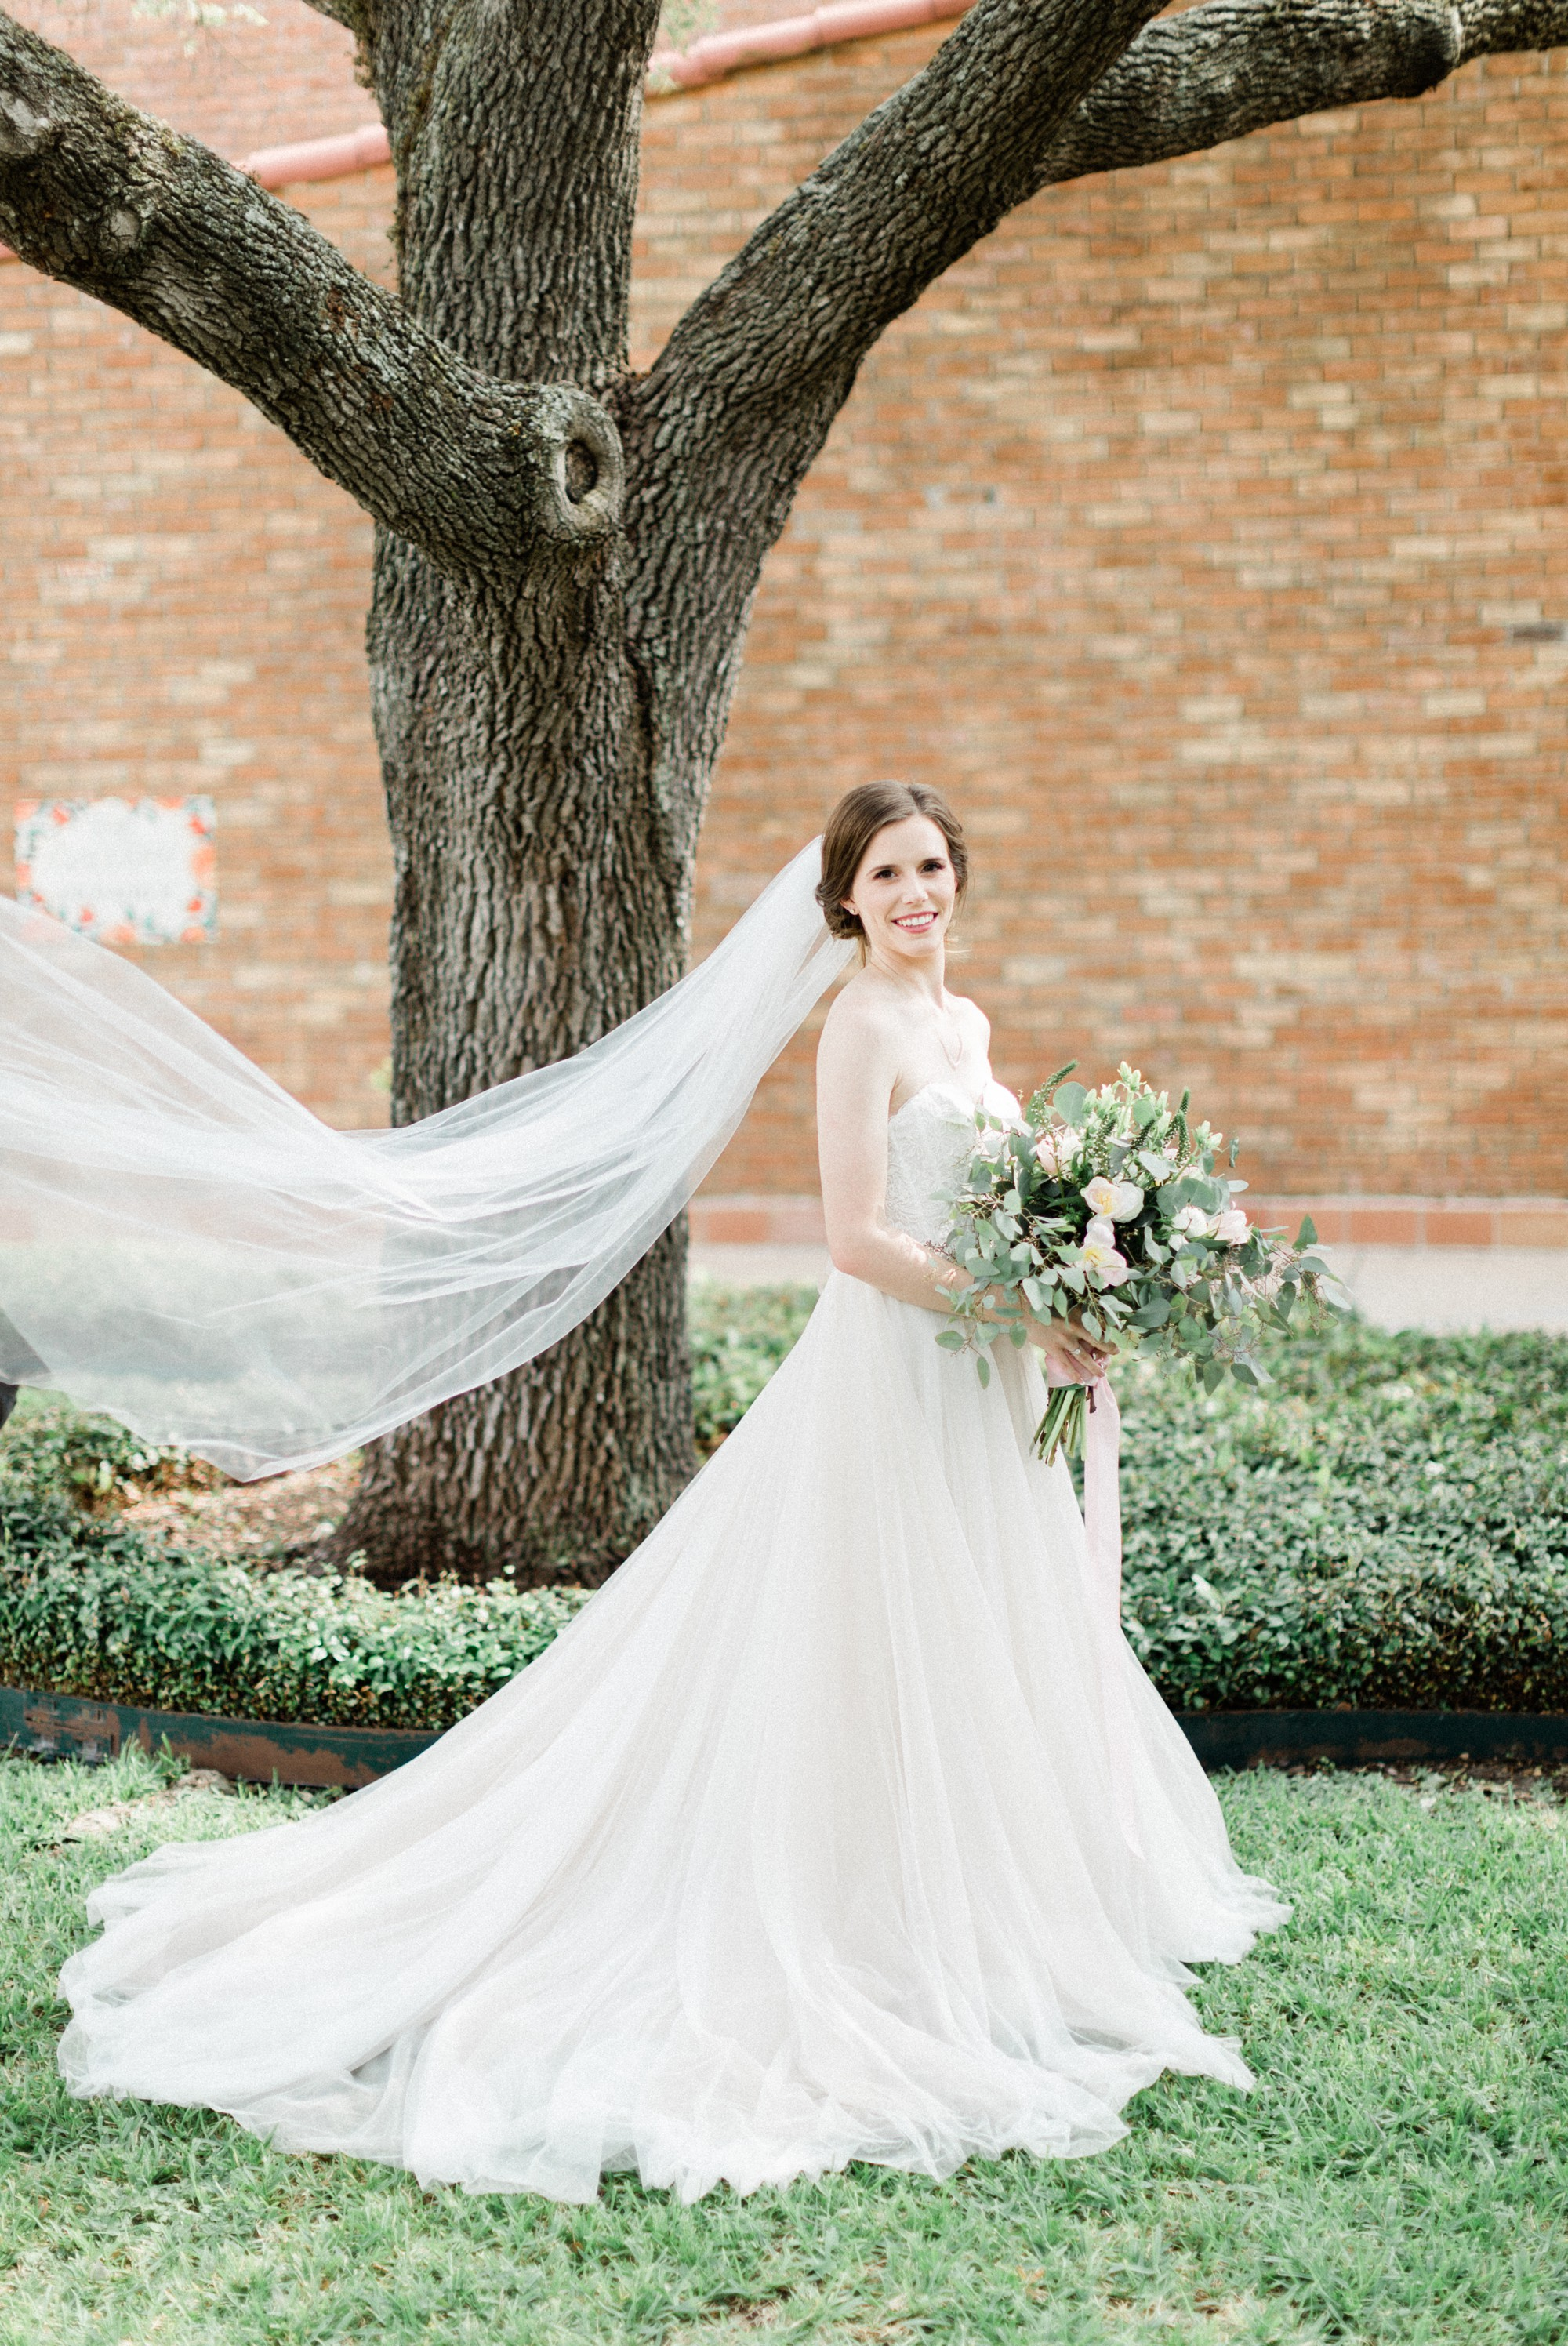 bride, bhldn dress, poison ivy floral design, spring wedding photo, the gallery, houston, texas, dreamy elk photography and design